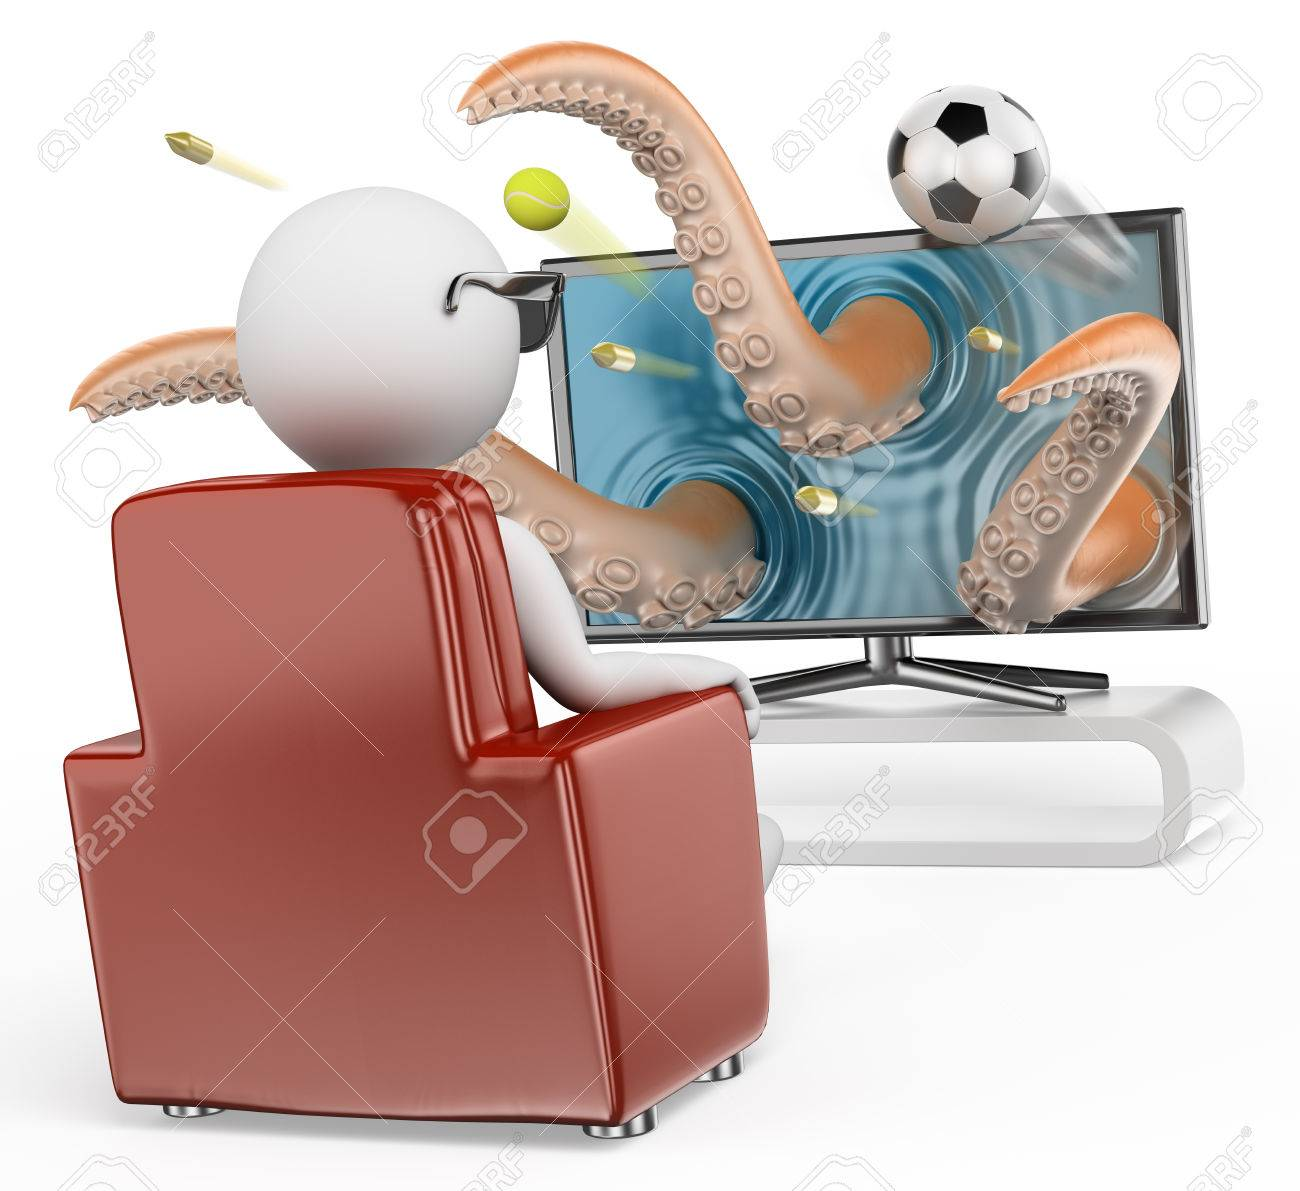 3d white people. Man sitting on a sofa watching a 3D TV. Sports movies. Isolated white background. Stock Photo - 28470652